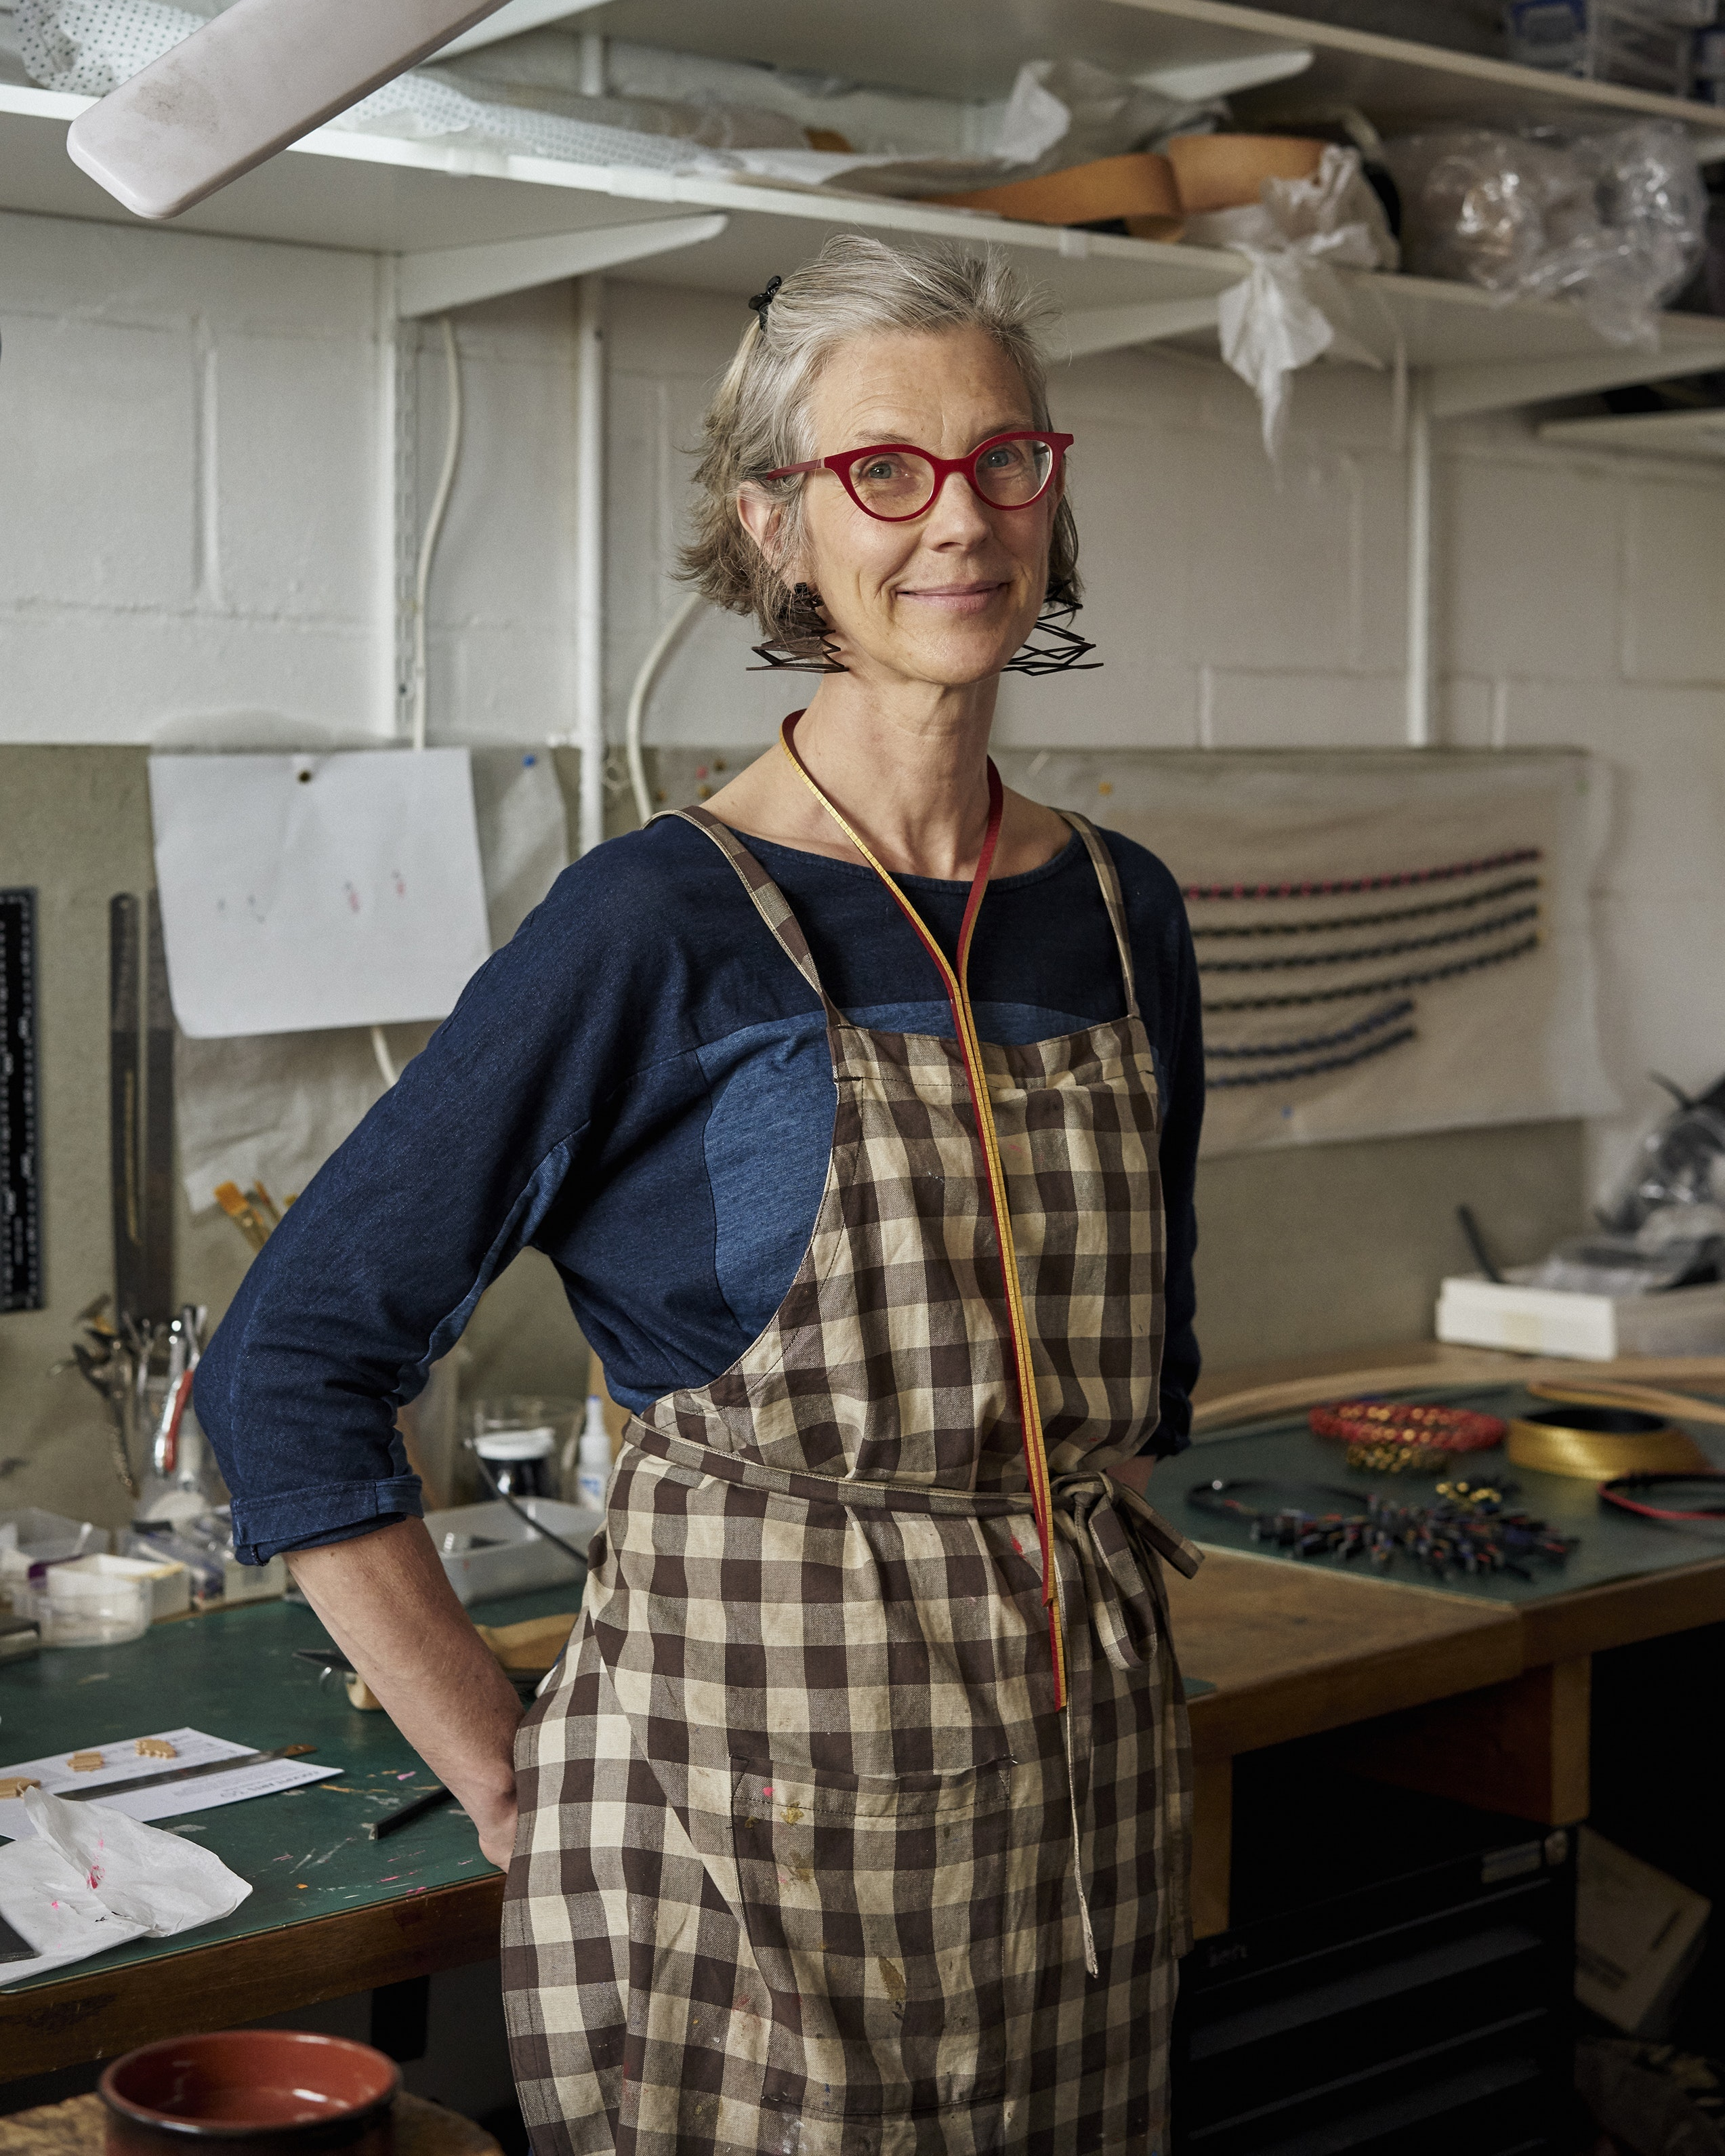 Tania Hall in her studio at Cockpit Arts in London's Holborn district.